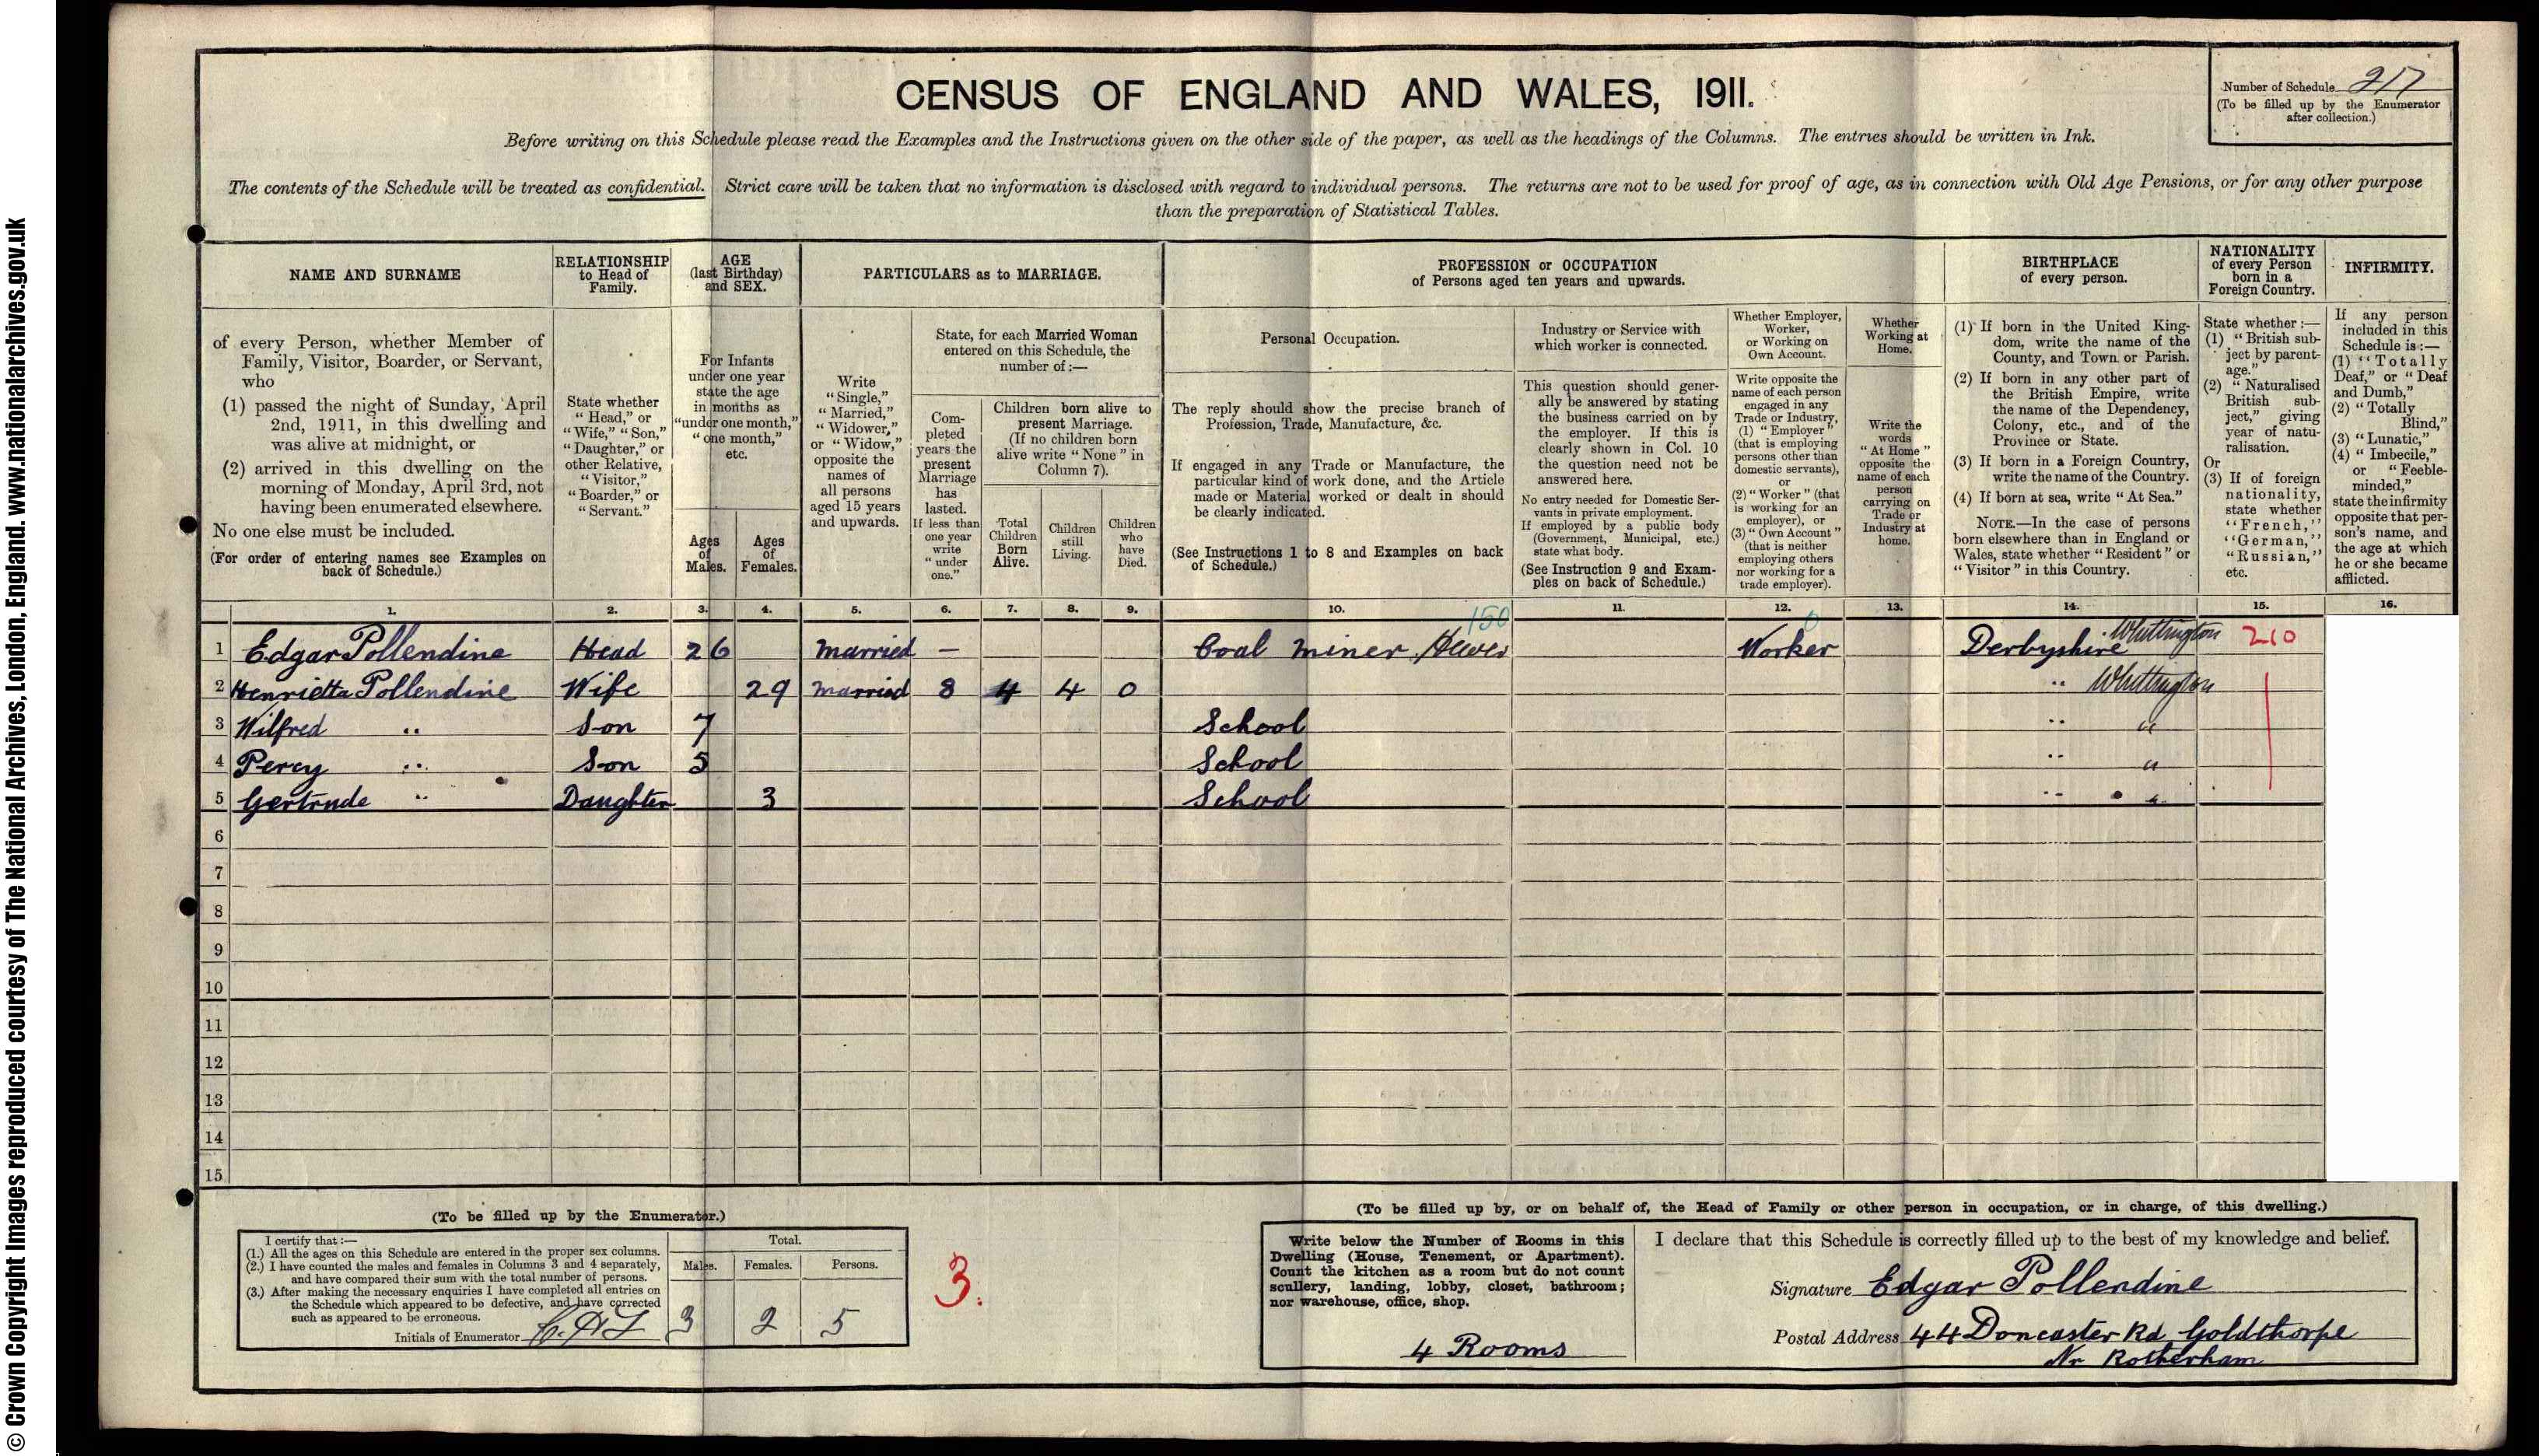 1911 England Census Record for Edgar Pollendine